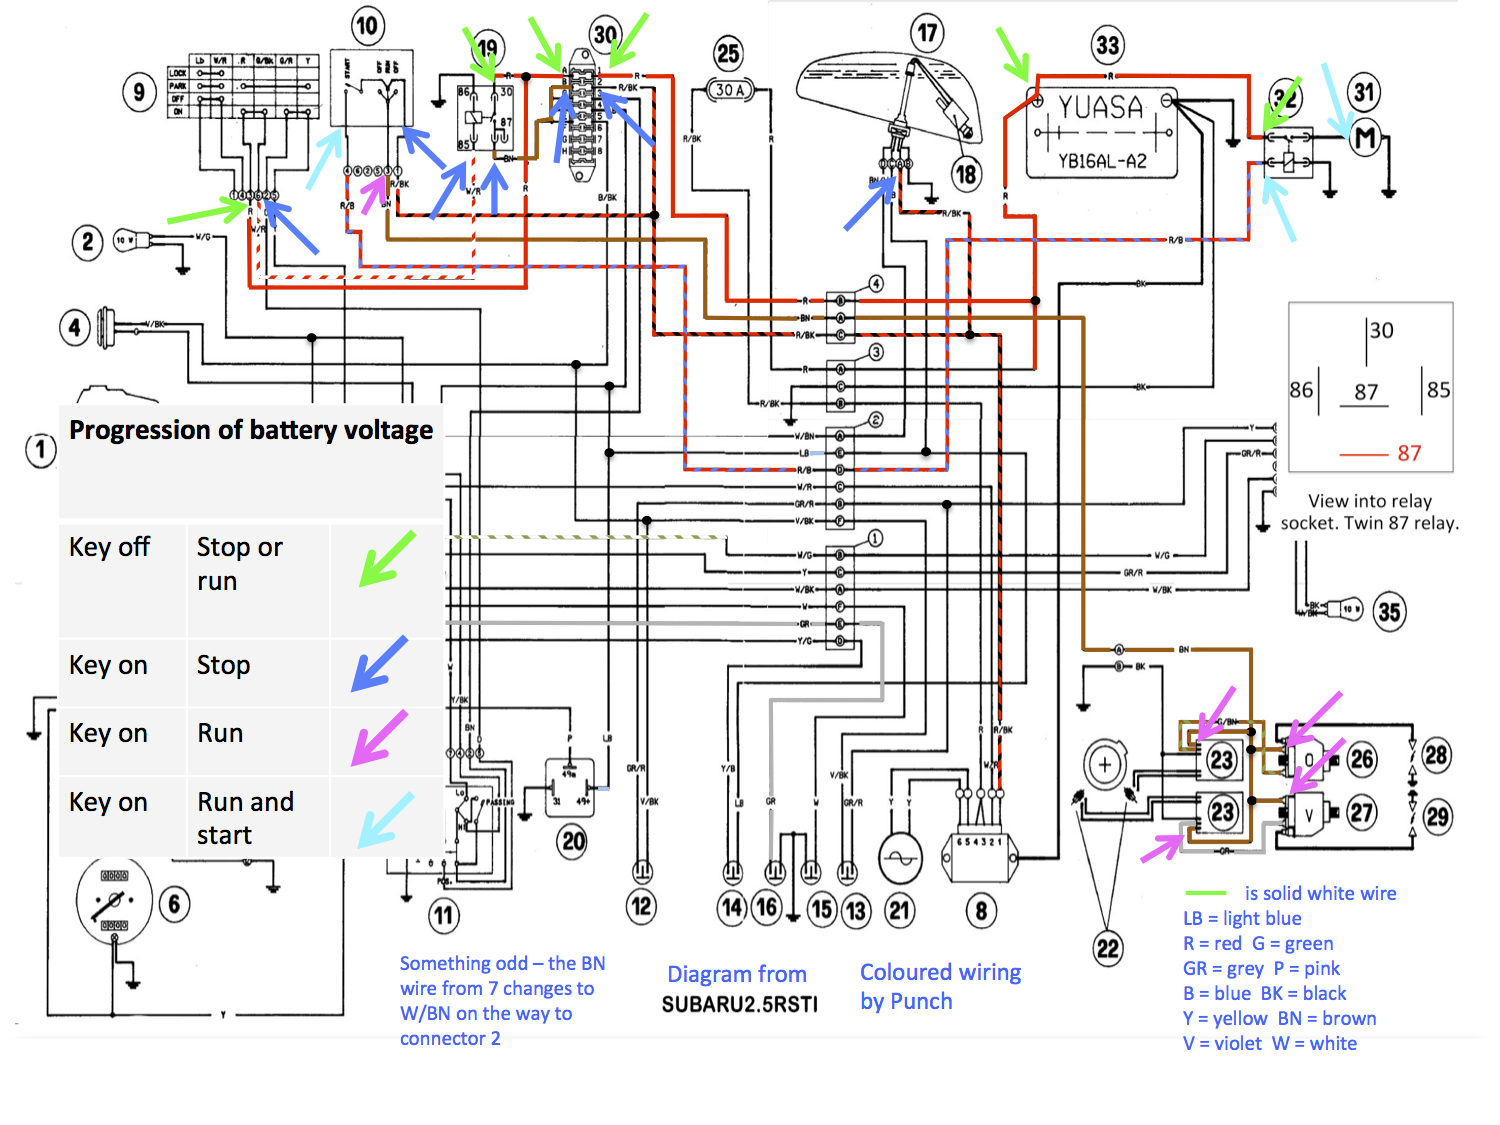 ducati paso wiring diagram wiring diagram navducati 907 wiring diagram wiring diagram automotive ducati 900ss wiring diagrams ducati paso wiring diagram